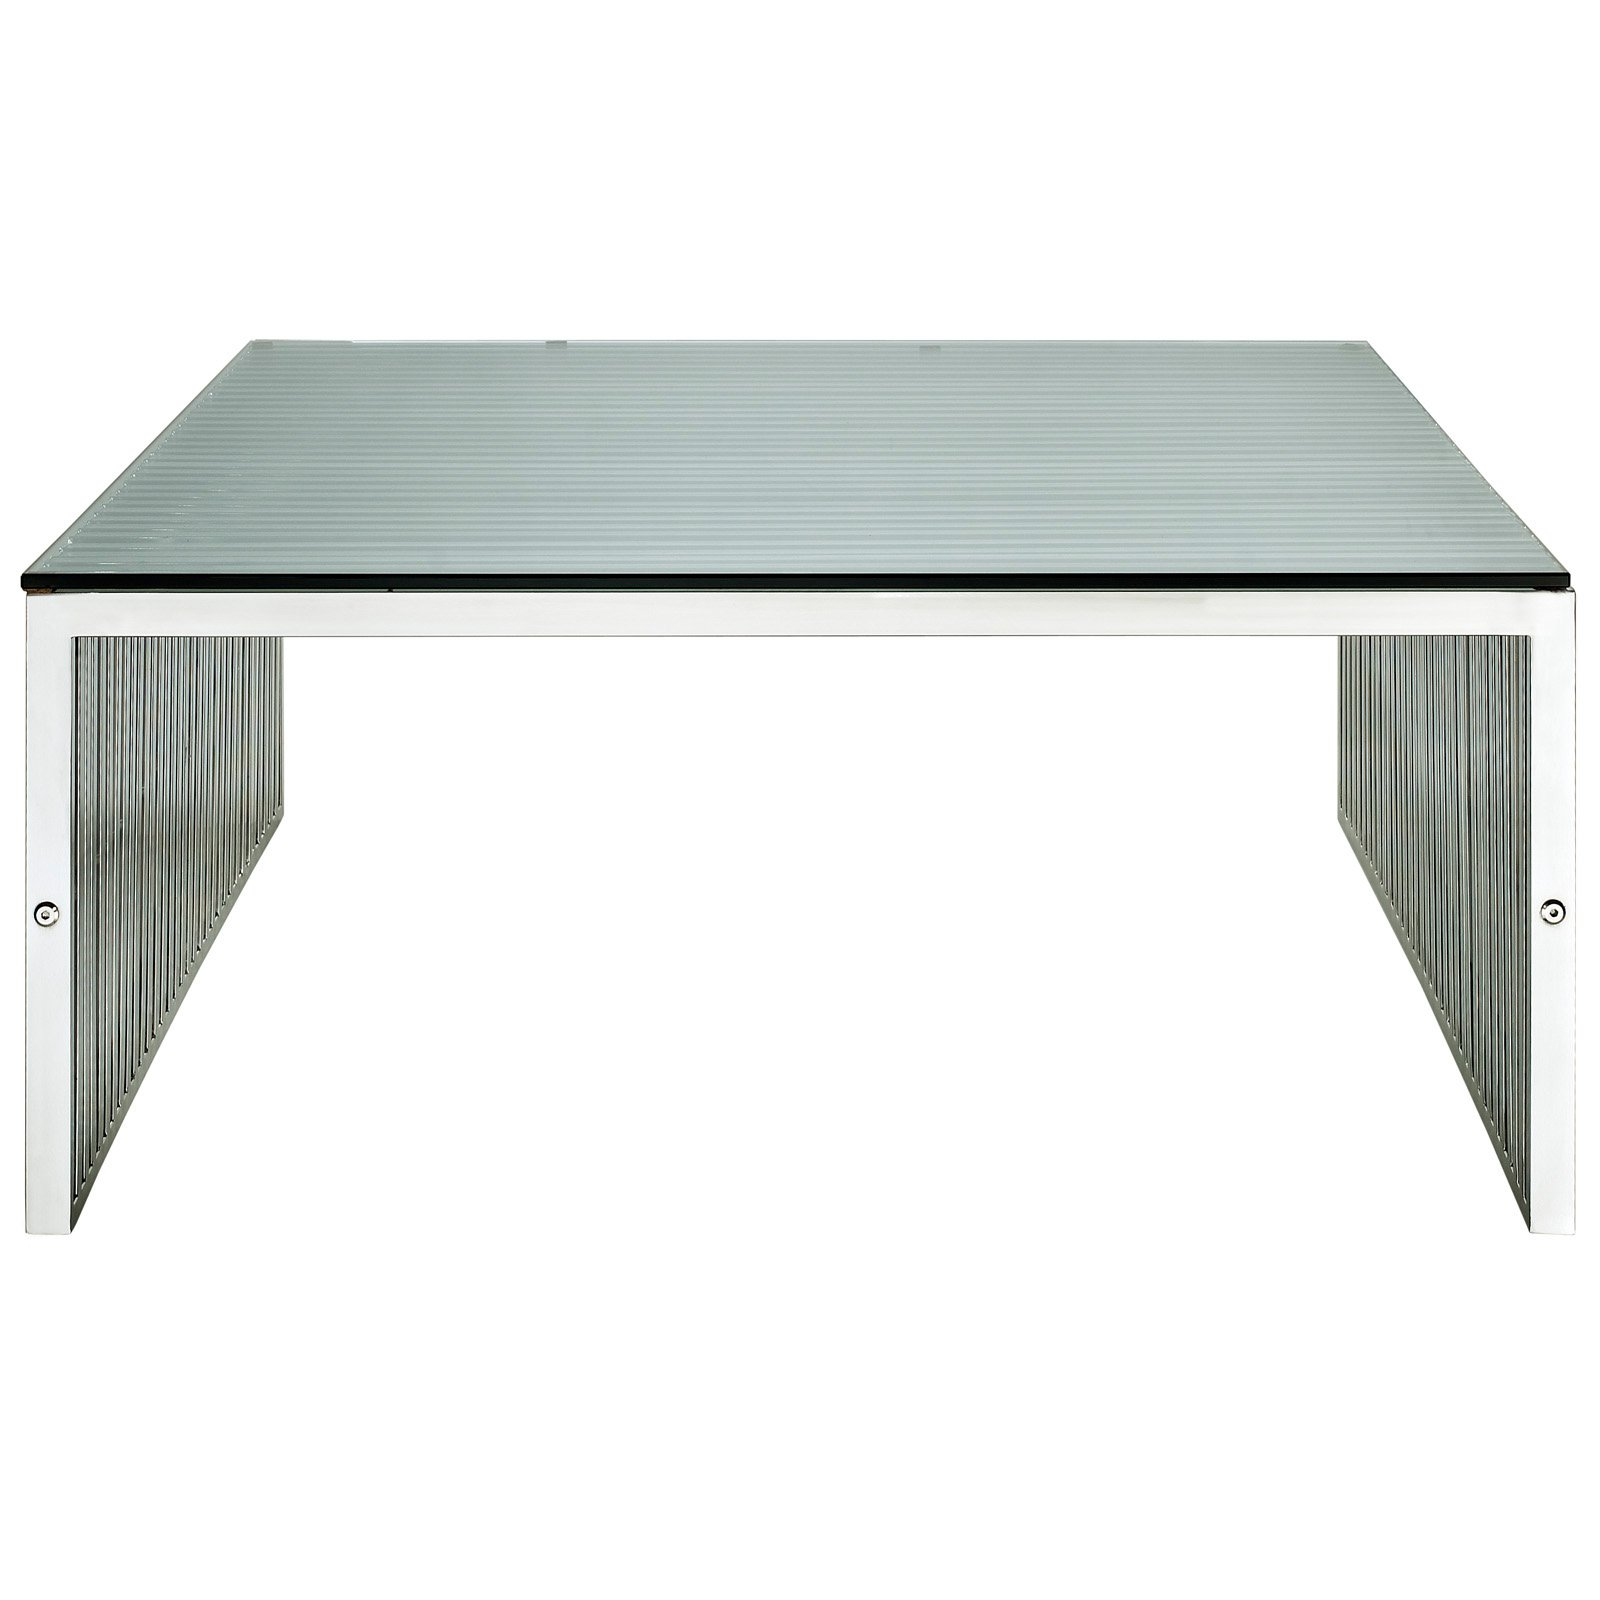 Modway Gridiron Stainless Steel Coffee Table with Glass Top in